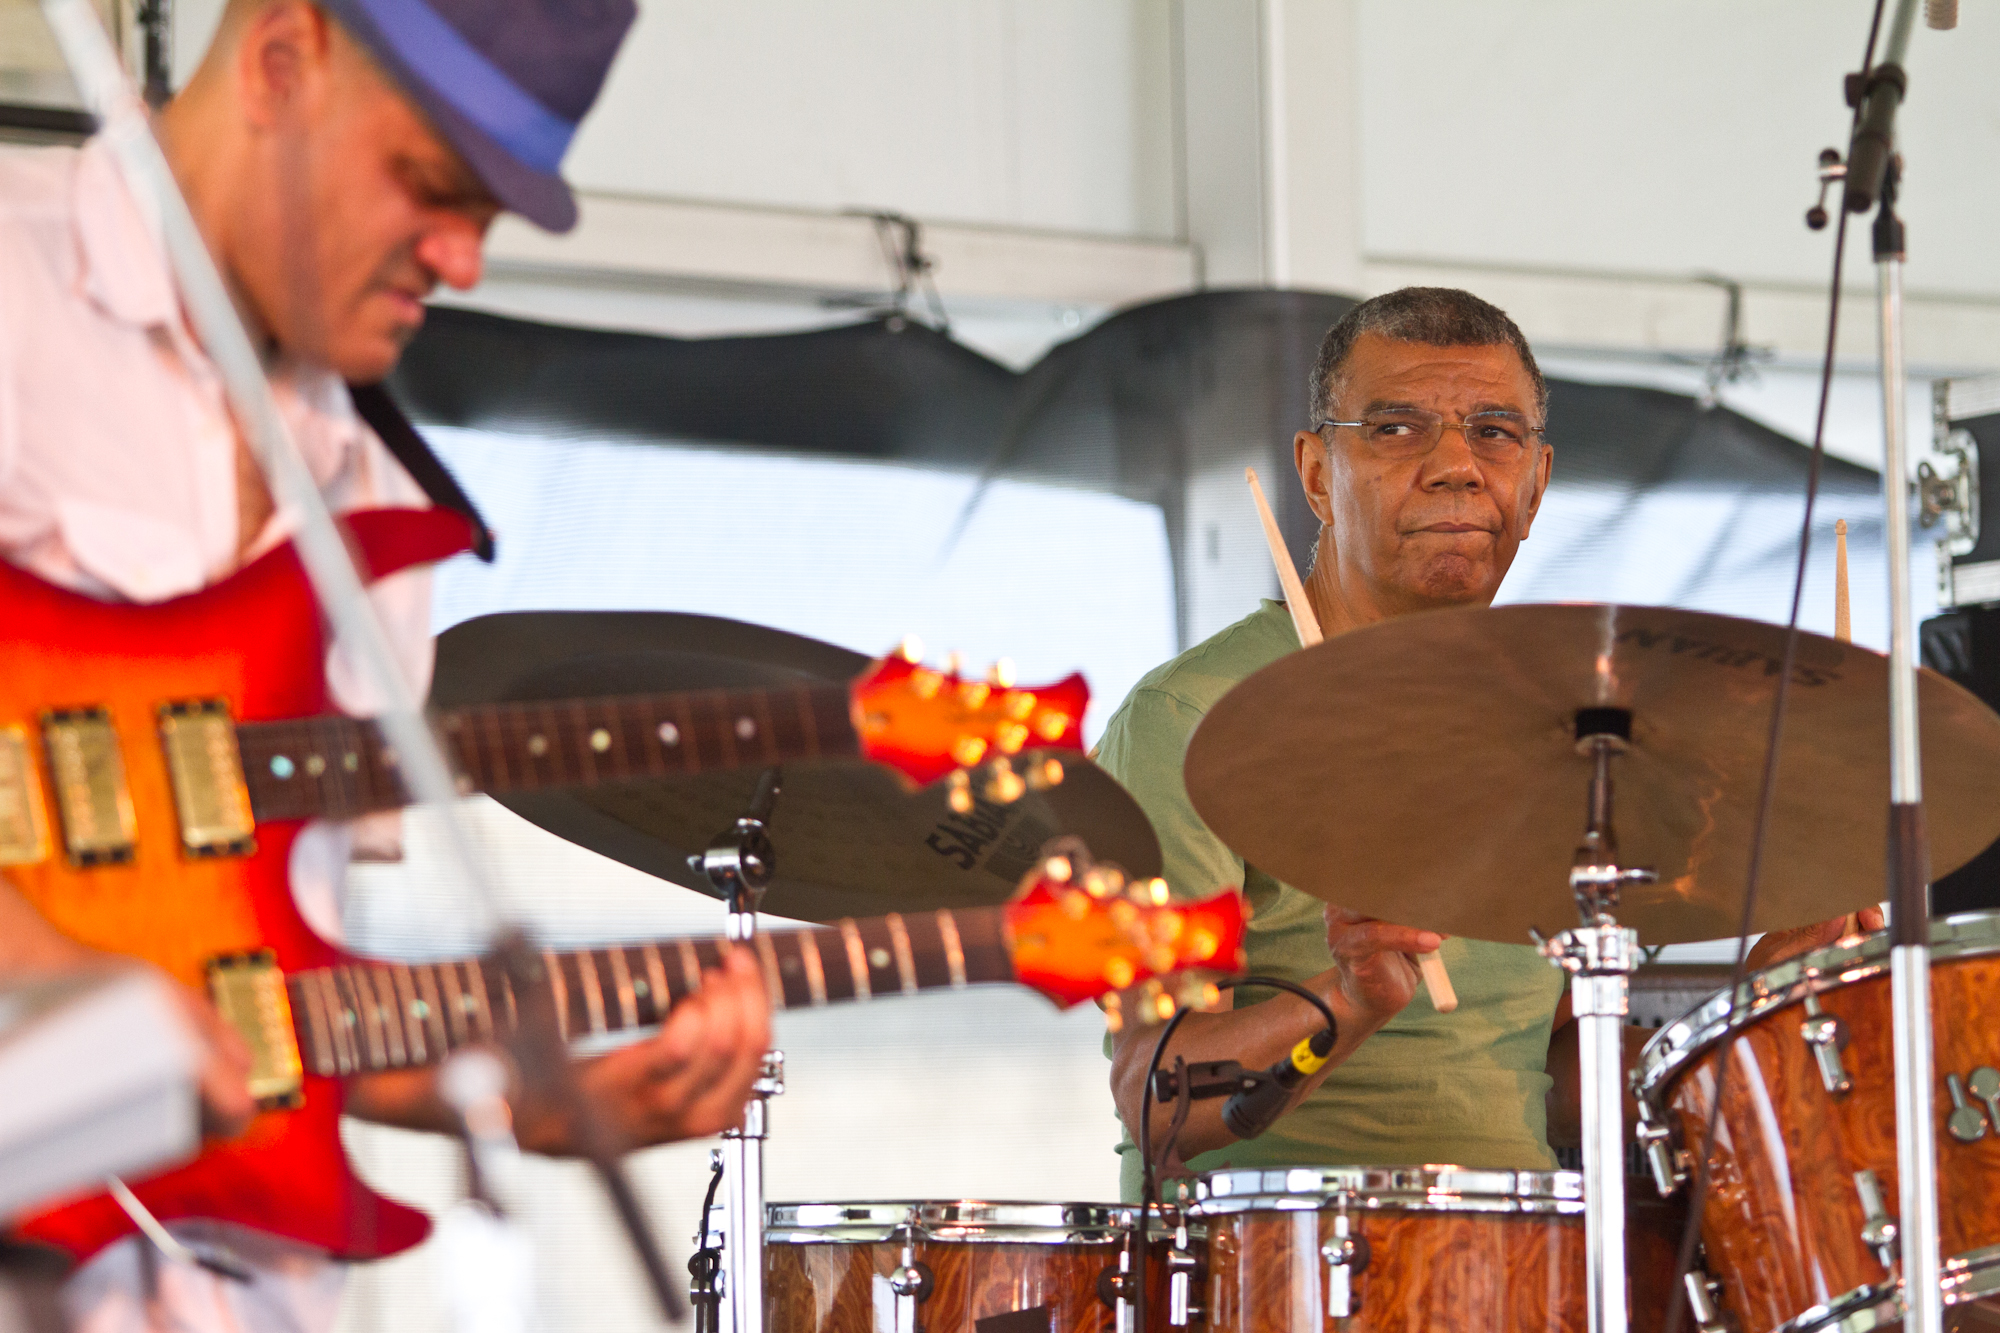 Jack DeJohnette (right) will turn 70 not long after the Newport Jazz Festival ends, but you wouldn't know it from the two vigorous sets he performed with two different groups on Saturday.